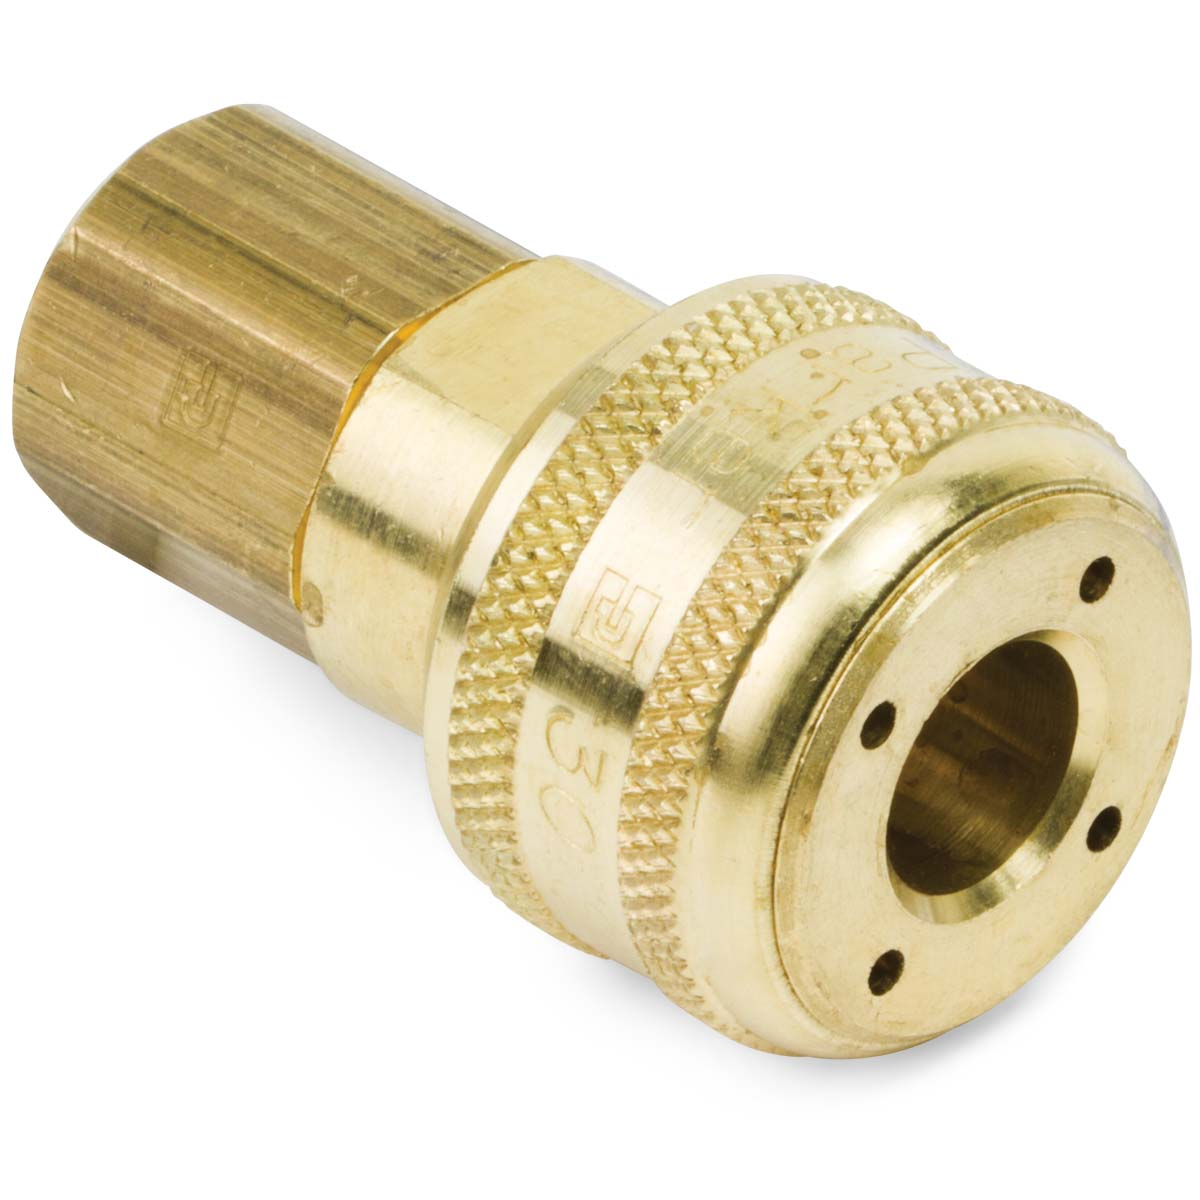 Pin Lock Quick Coupler : Industrial interchange pin lock female air coupler